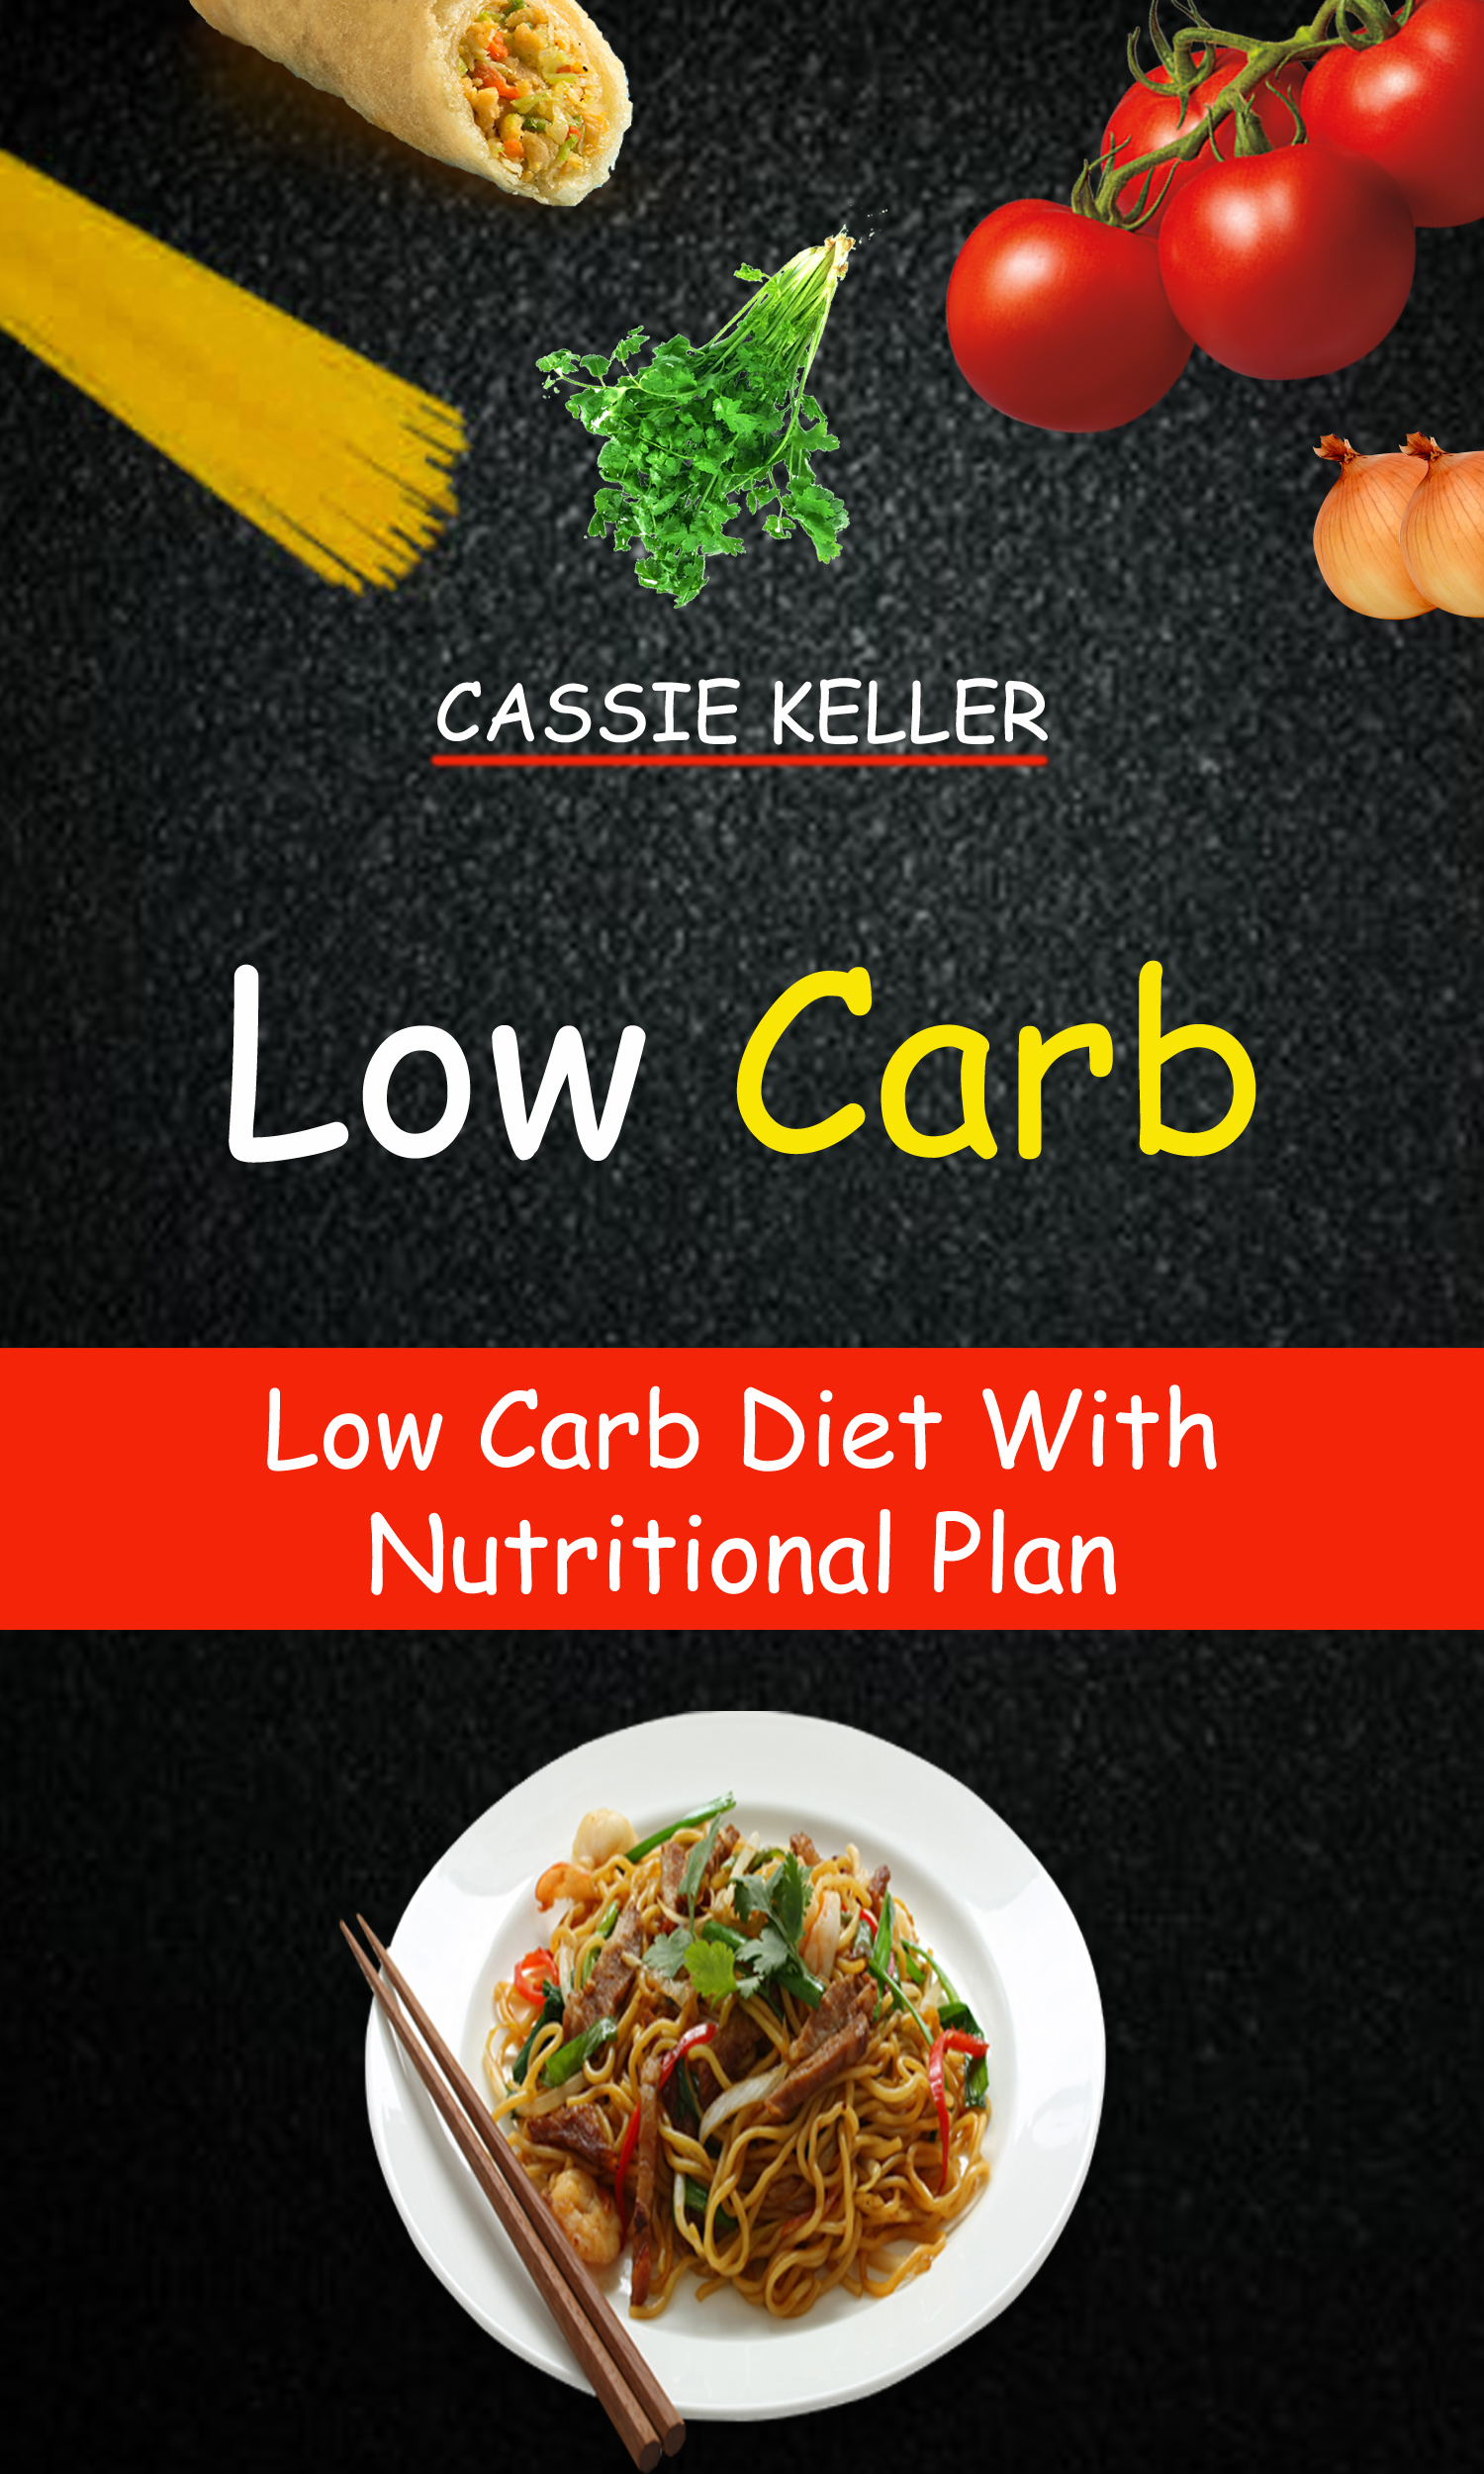 Low carb: low carb diet with nutritional plan